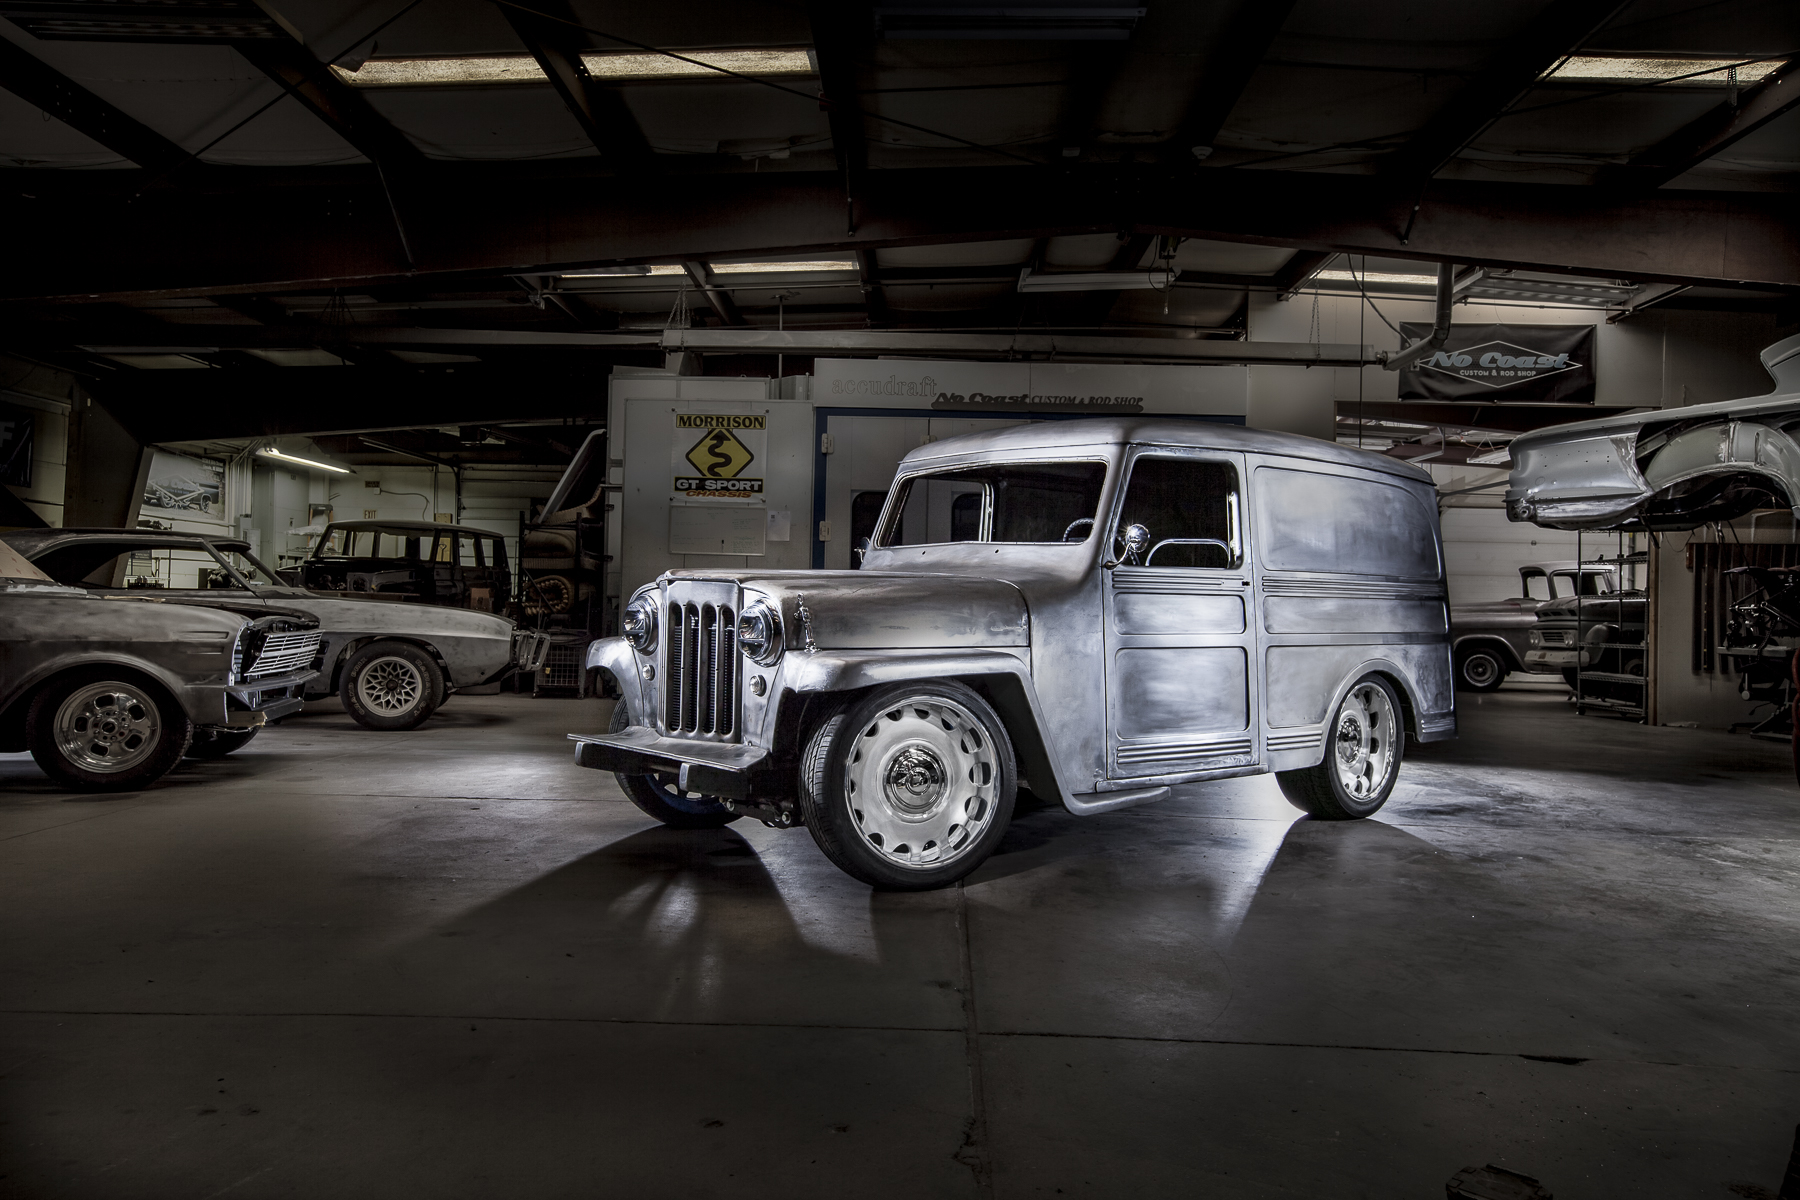 48 Willys